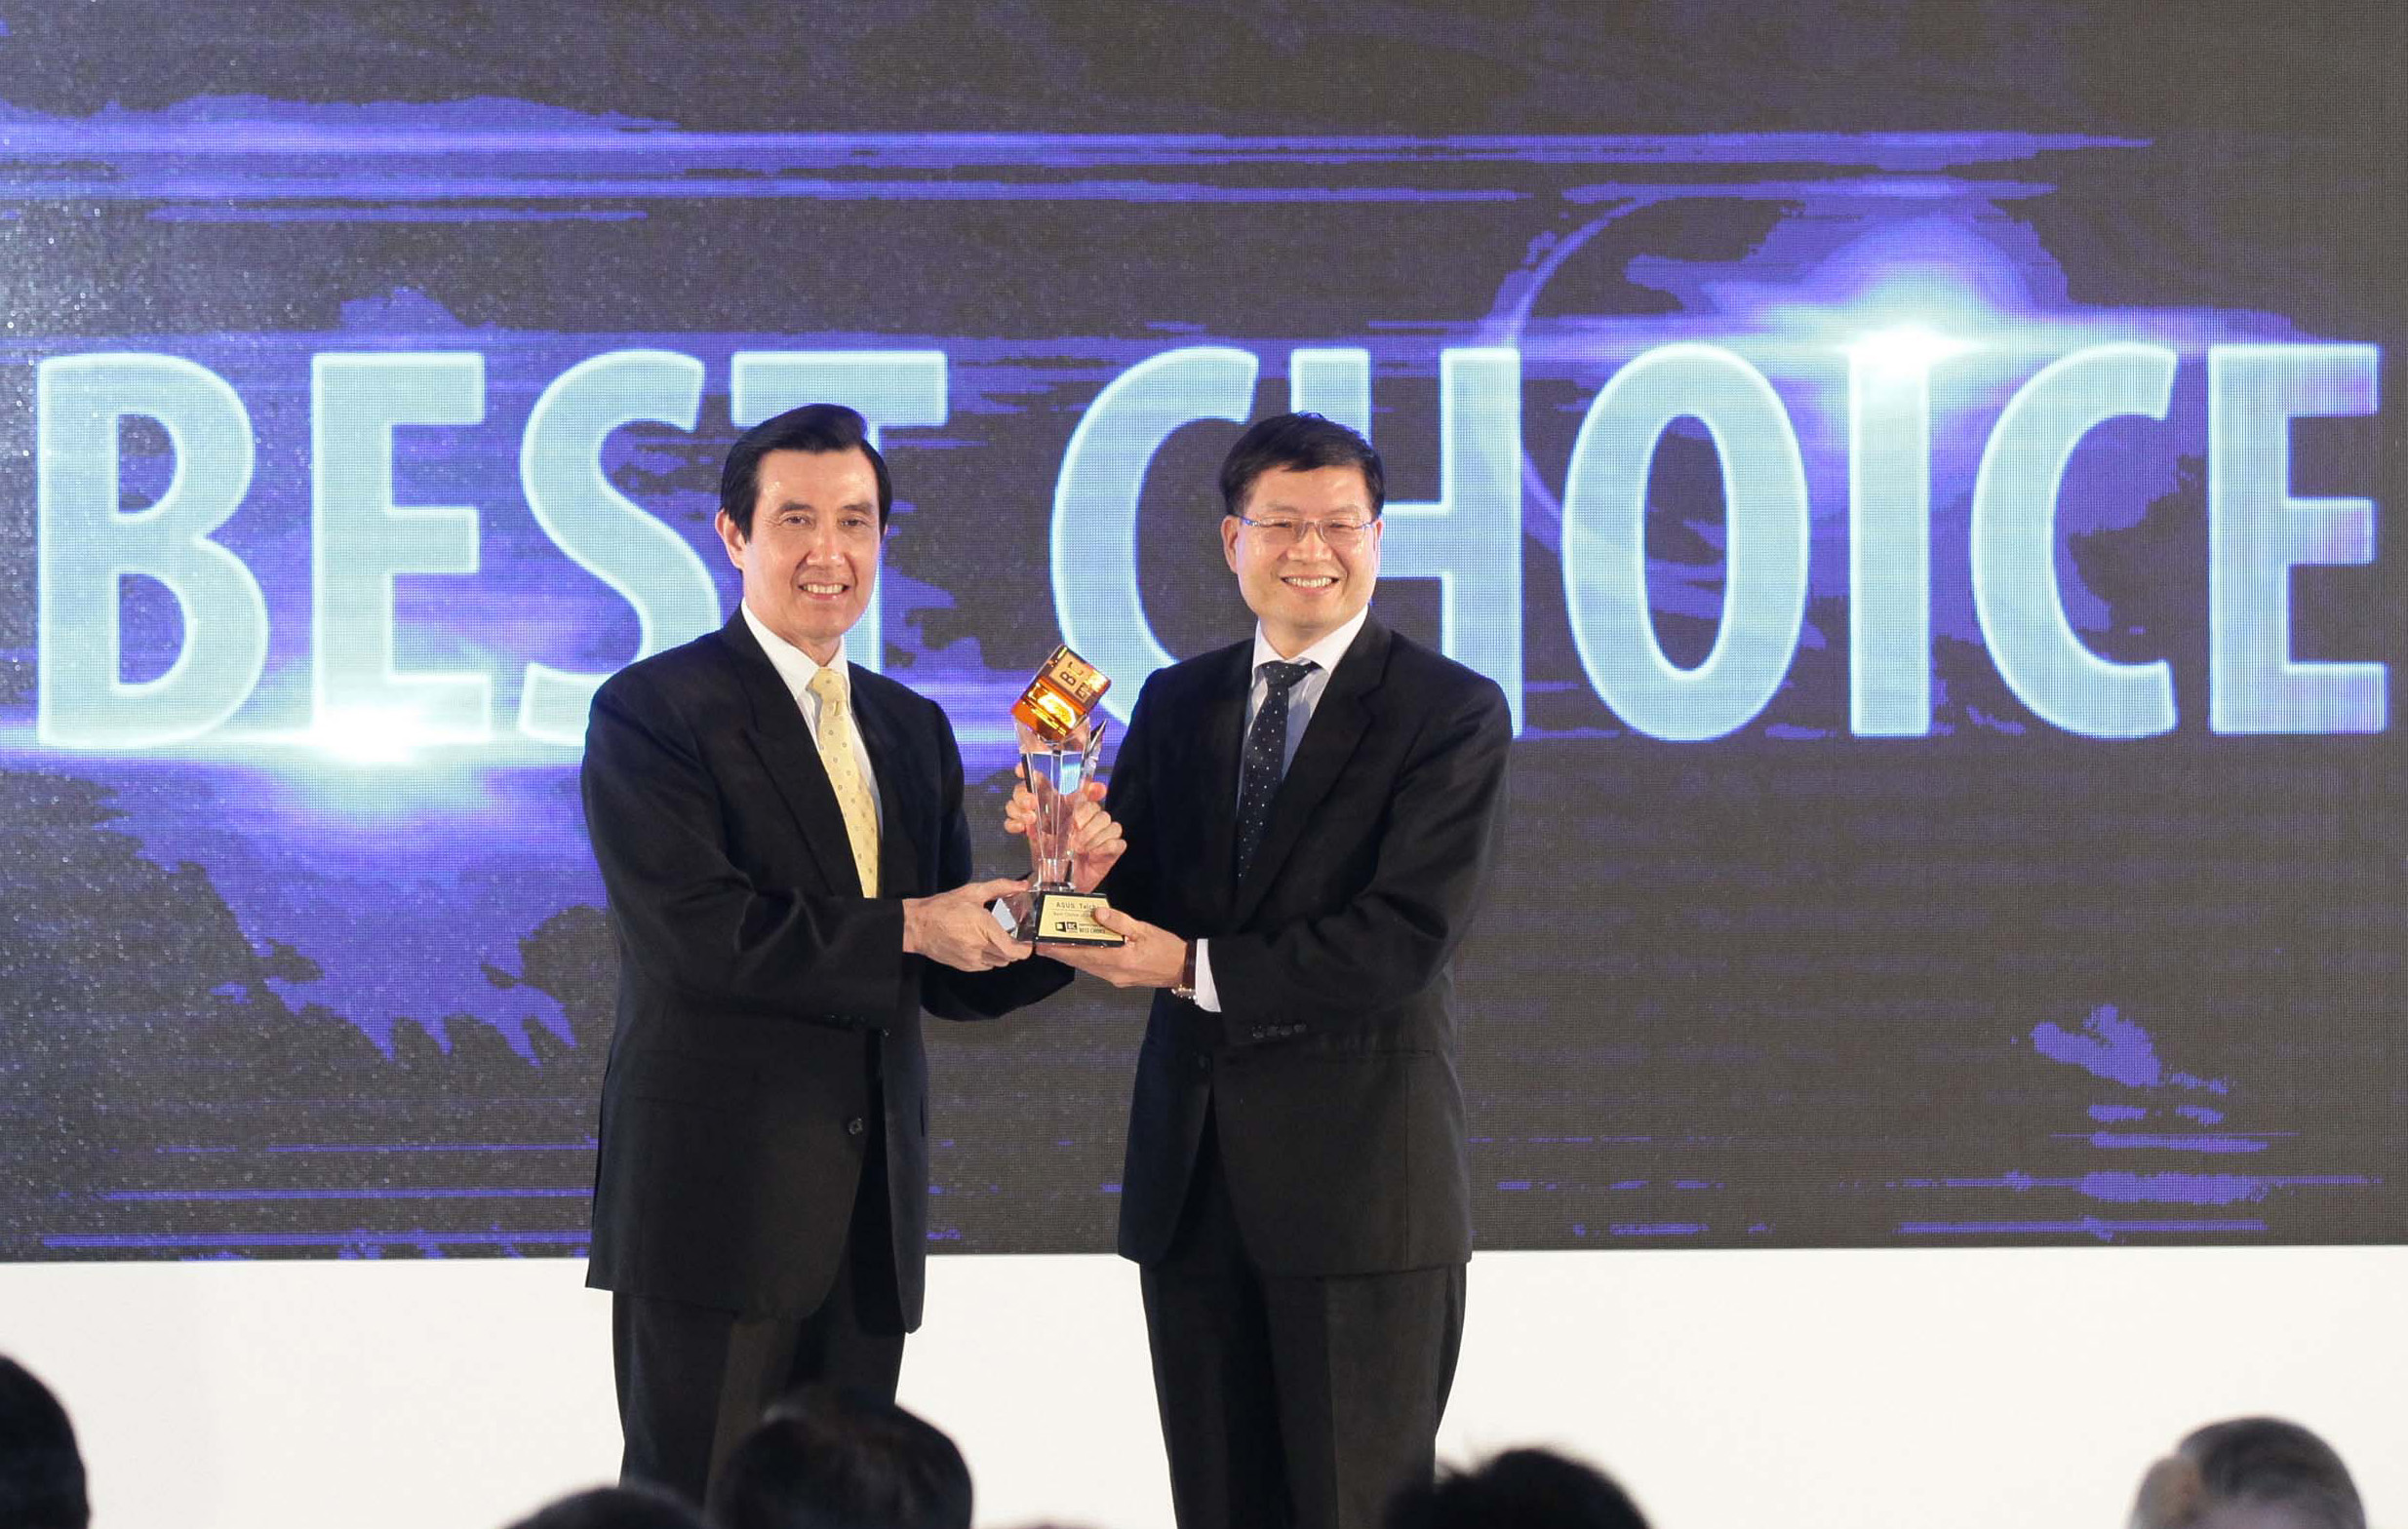 ASUS Products Win Multiple Awards at Computex Taipei 2013